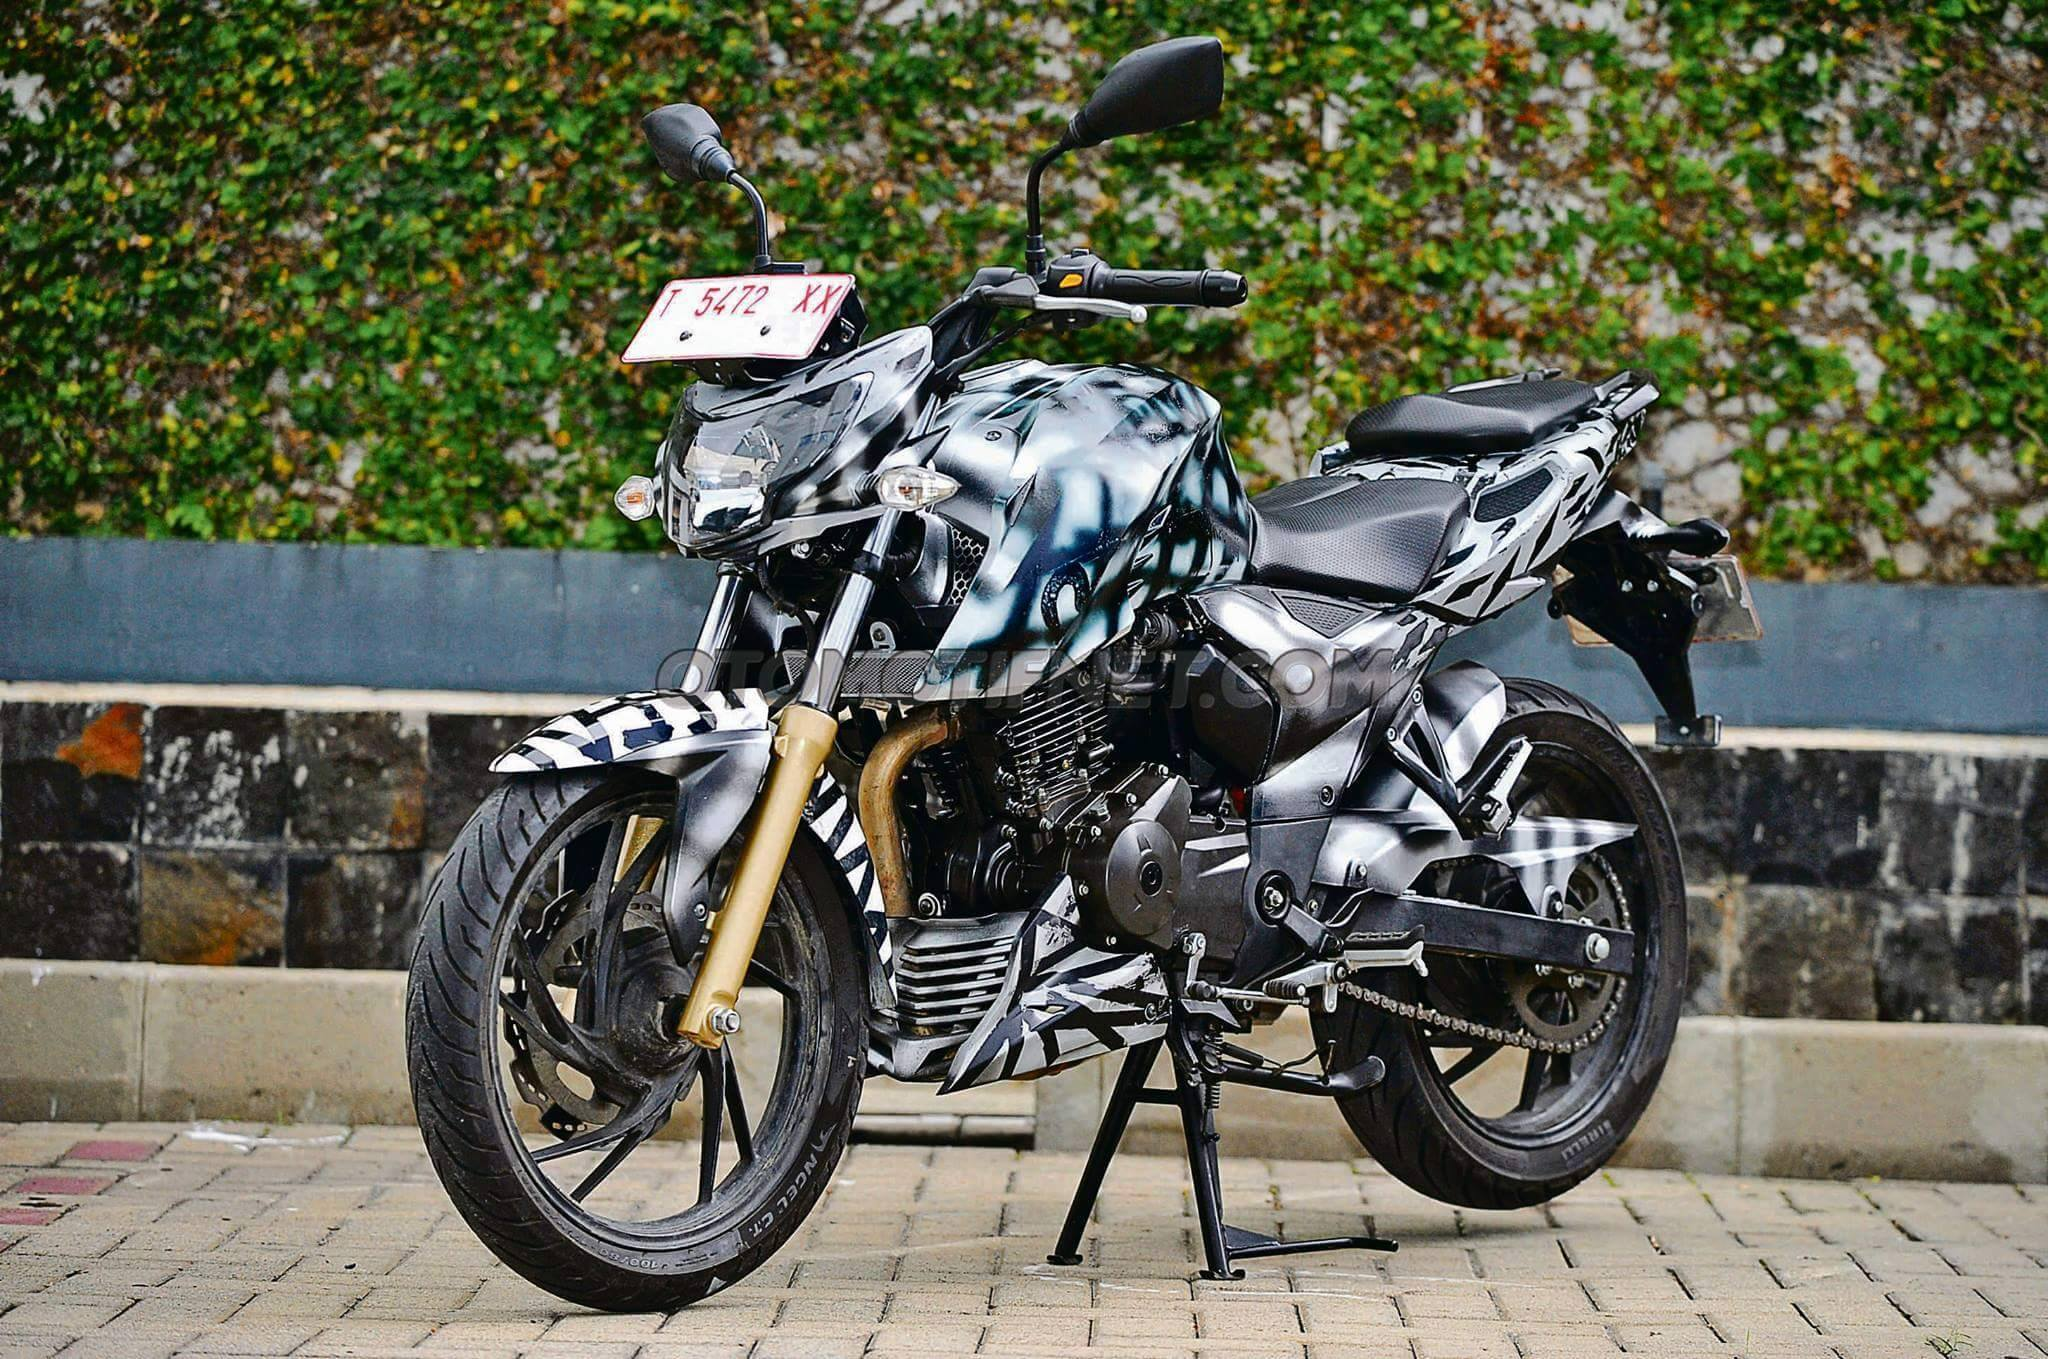 Spied Tvs Apache Rtr 200 4v Seen Again Without Wearing A